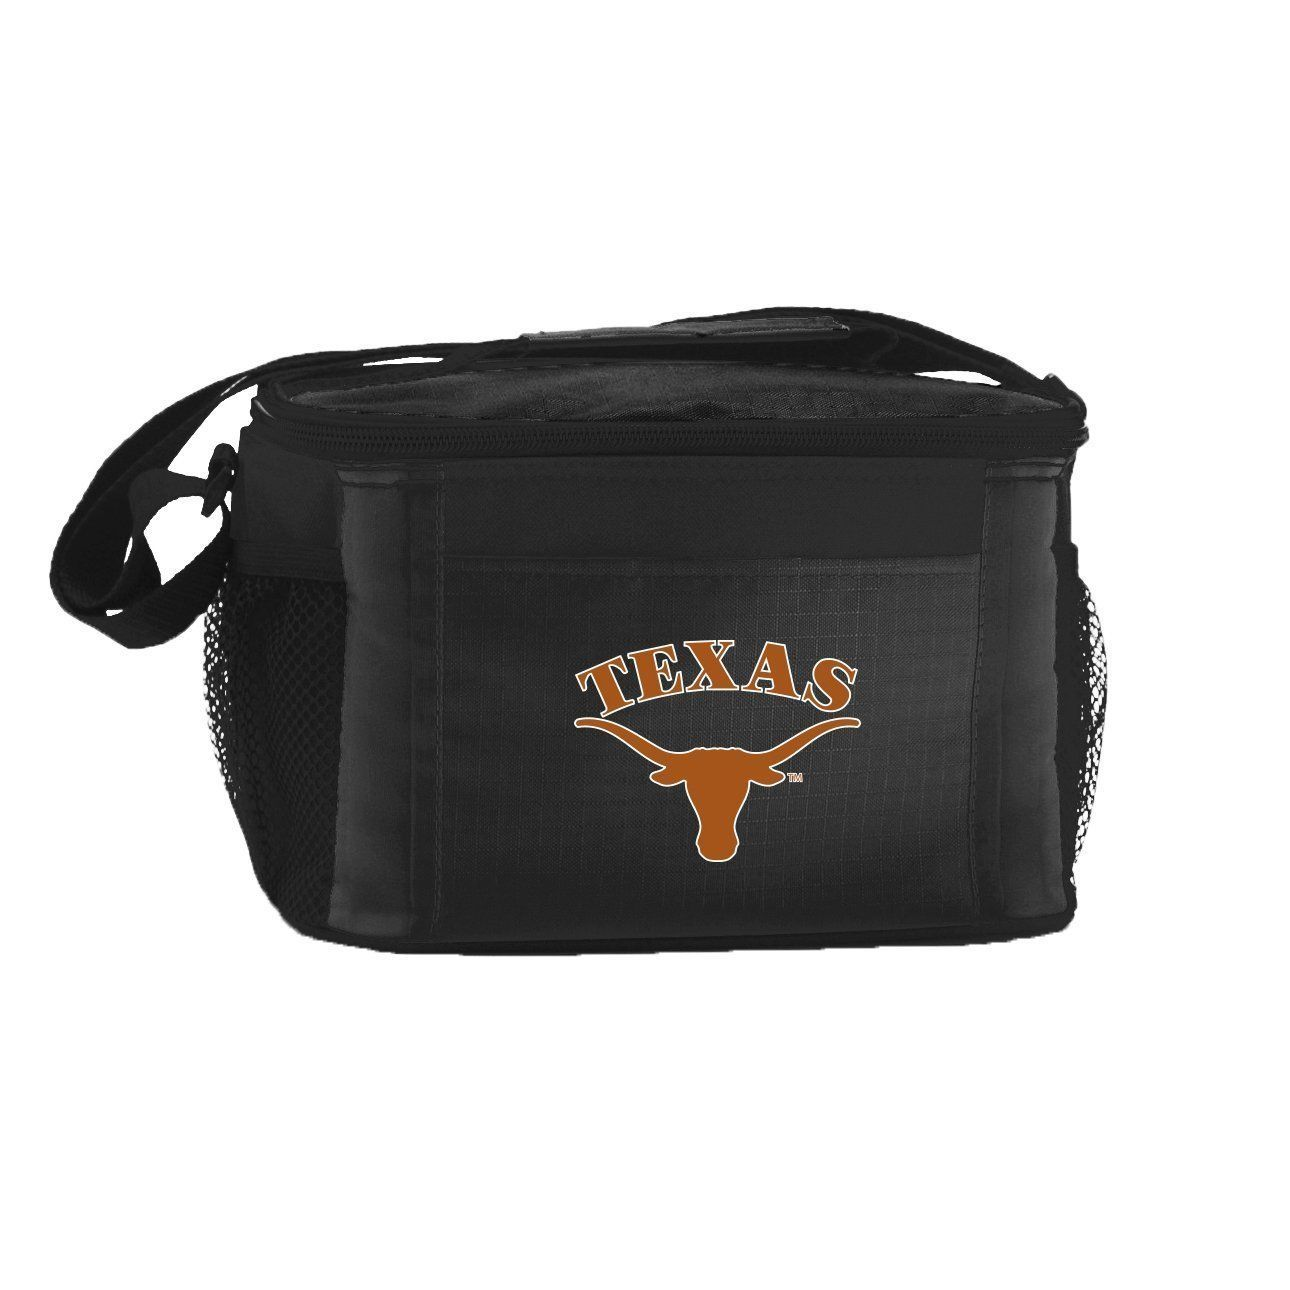 TEXAS LONGHORNS LUNCH TOTE 6 PK BEER SODA TEAM LOGO KOOLER BAG NCAA